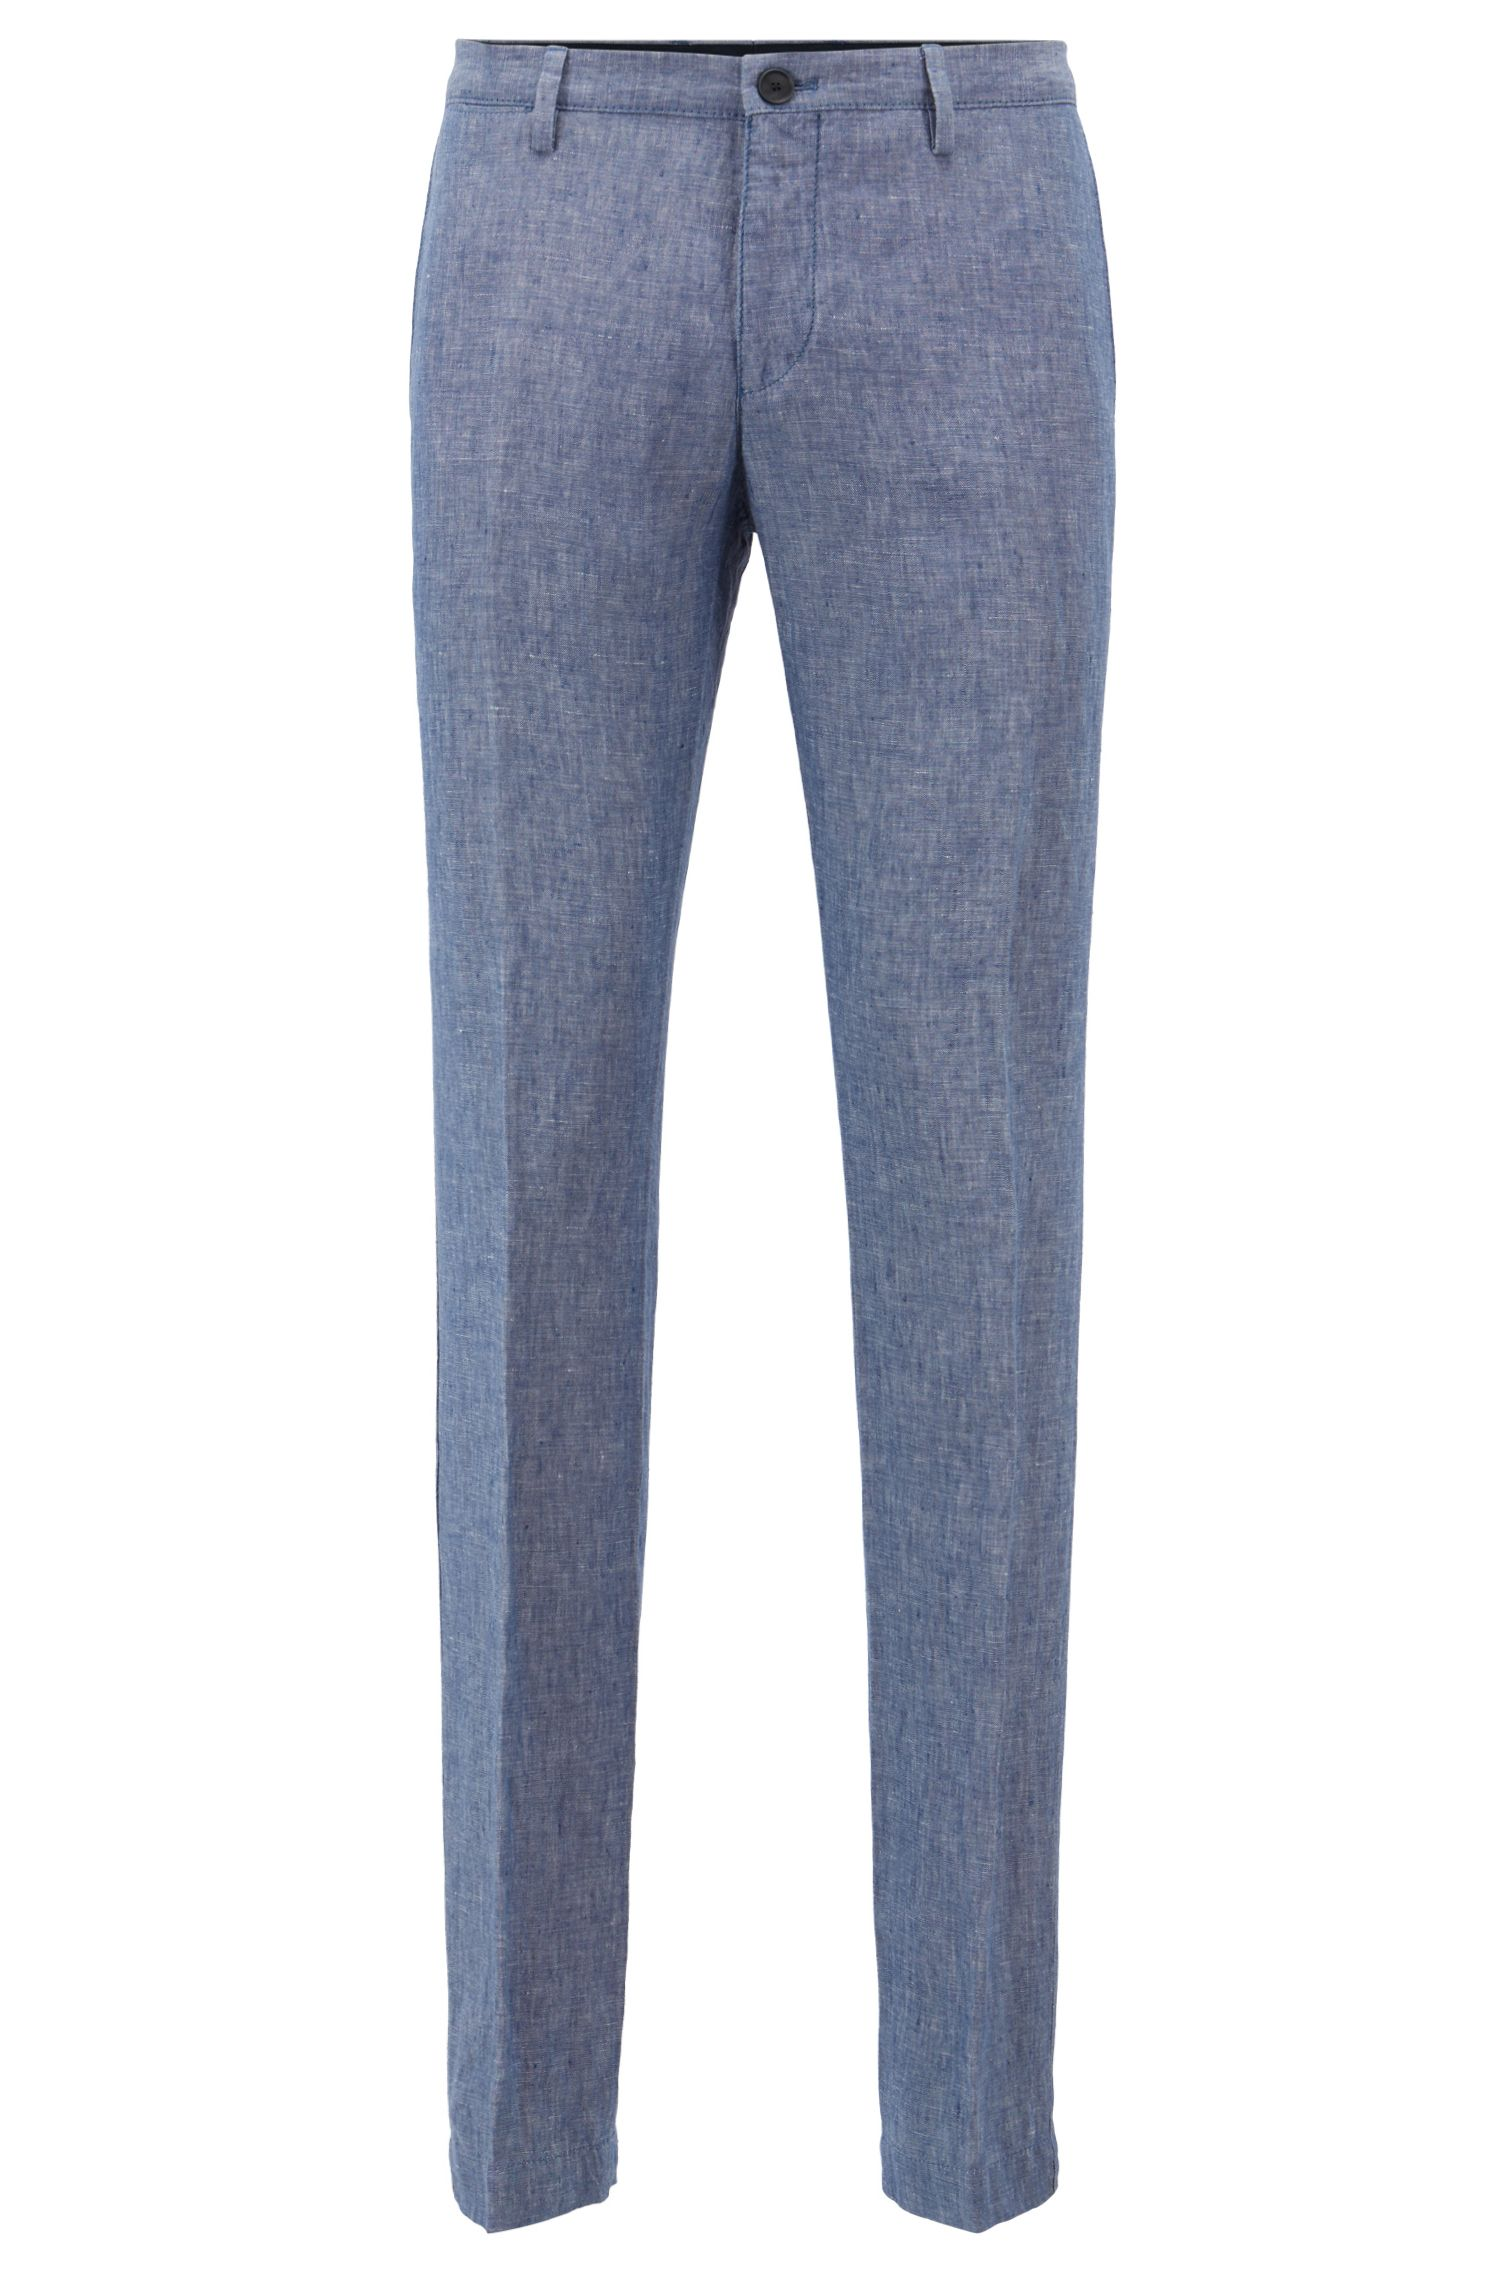 Pantalon Slim Fit en lin, Bleu vif